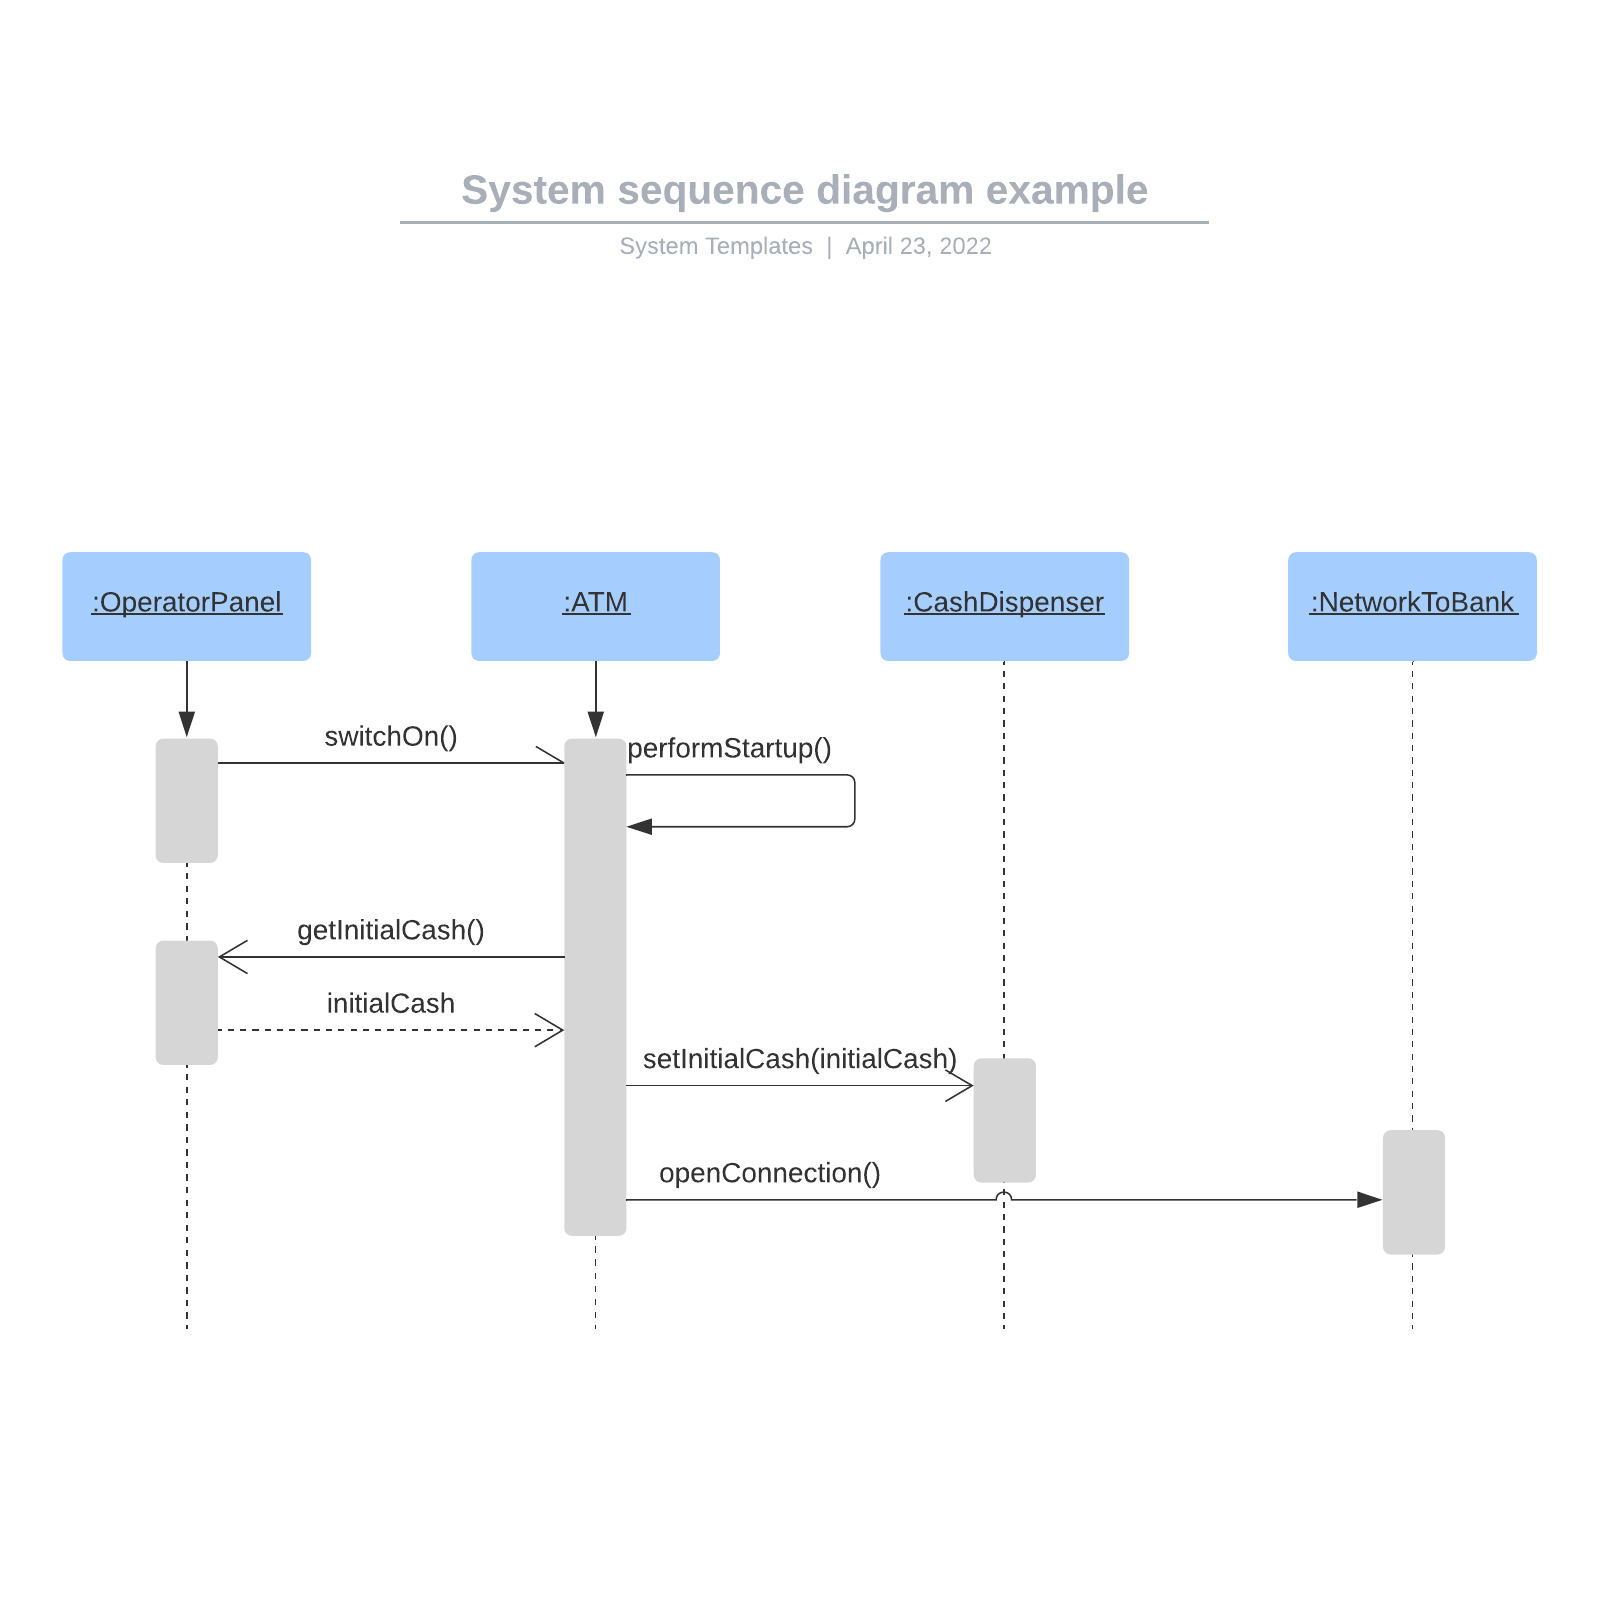 System sequence diagram example